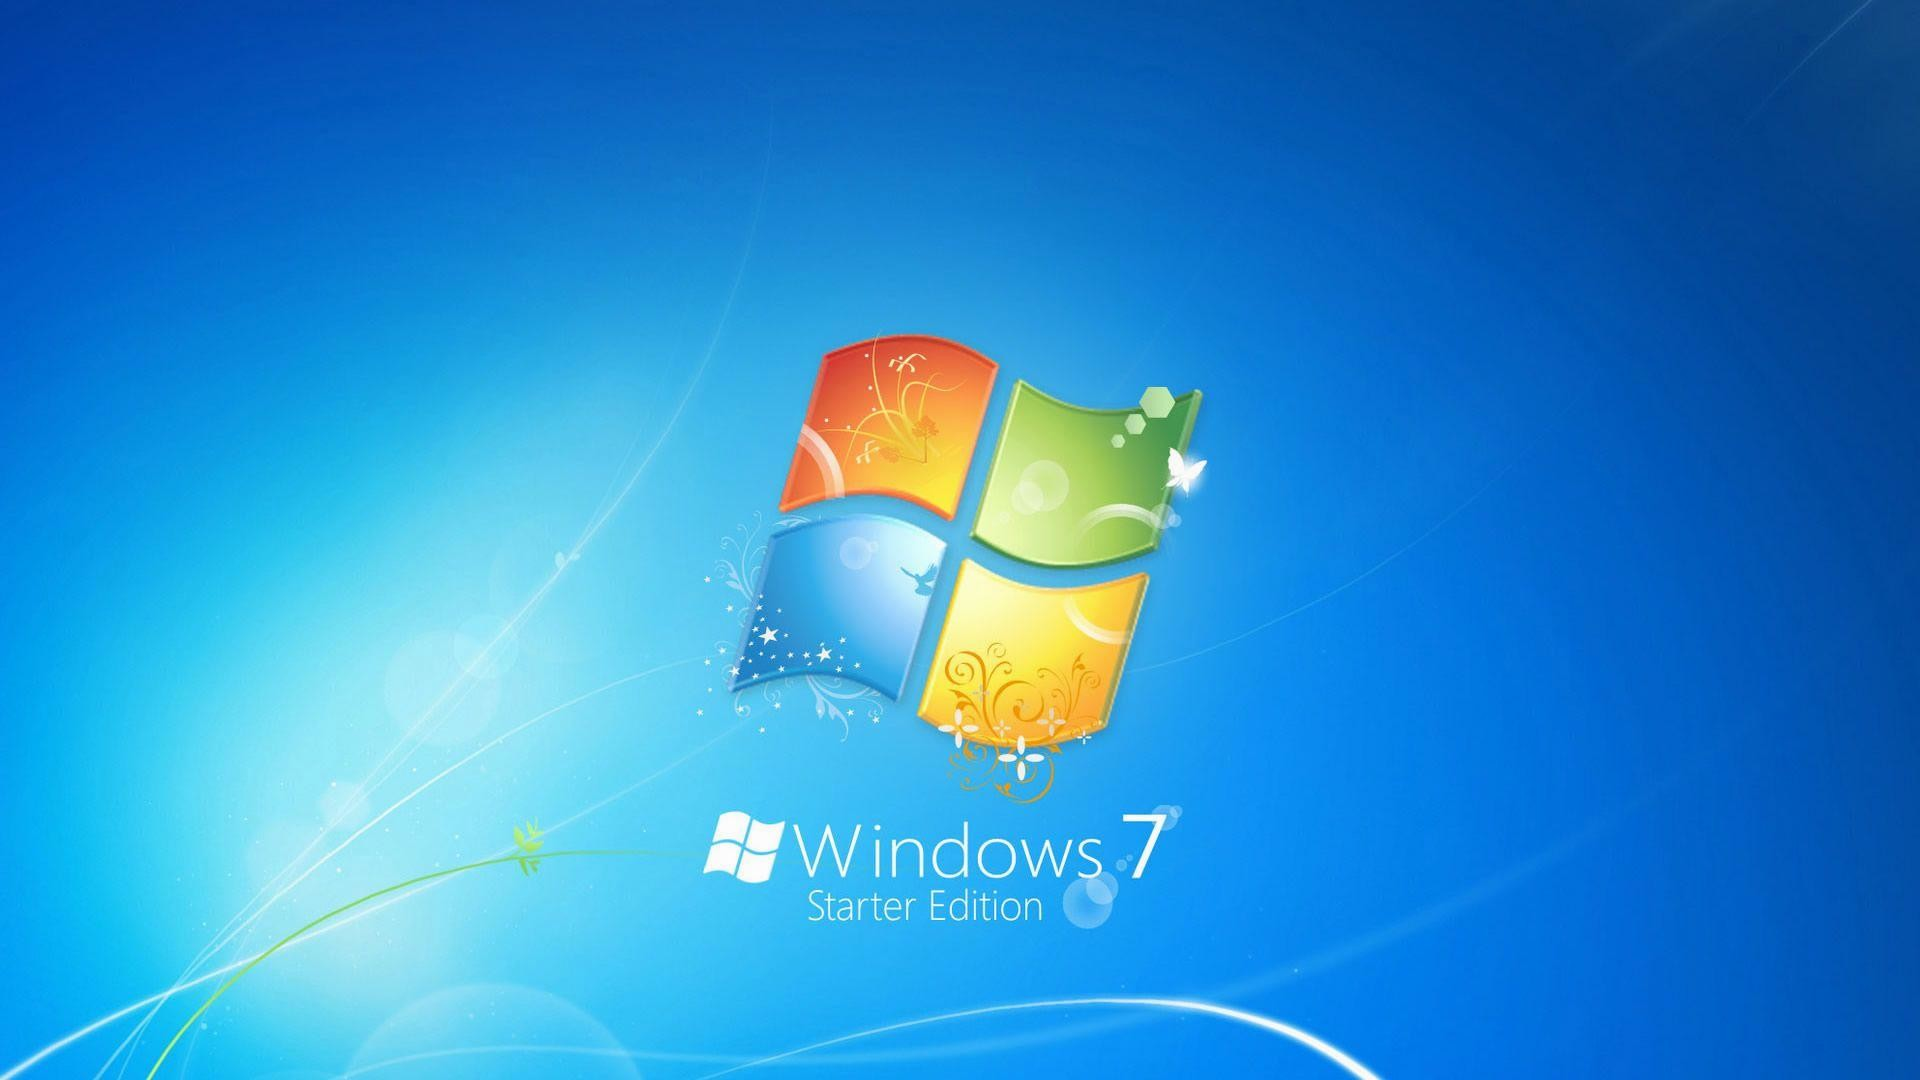 Desktop Background Windows 7 62 images 1920x1080